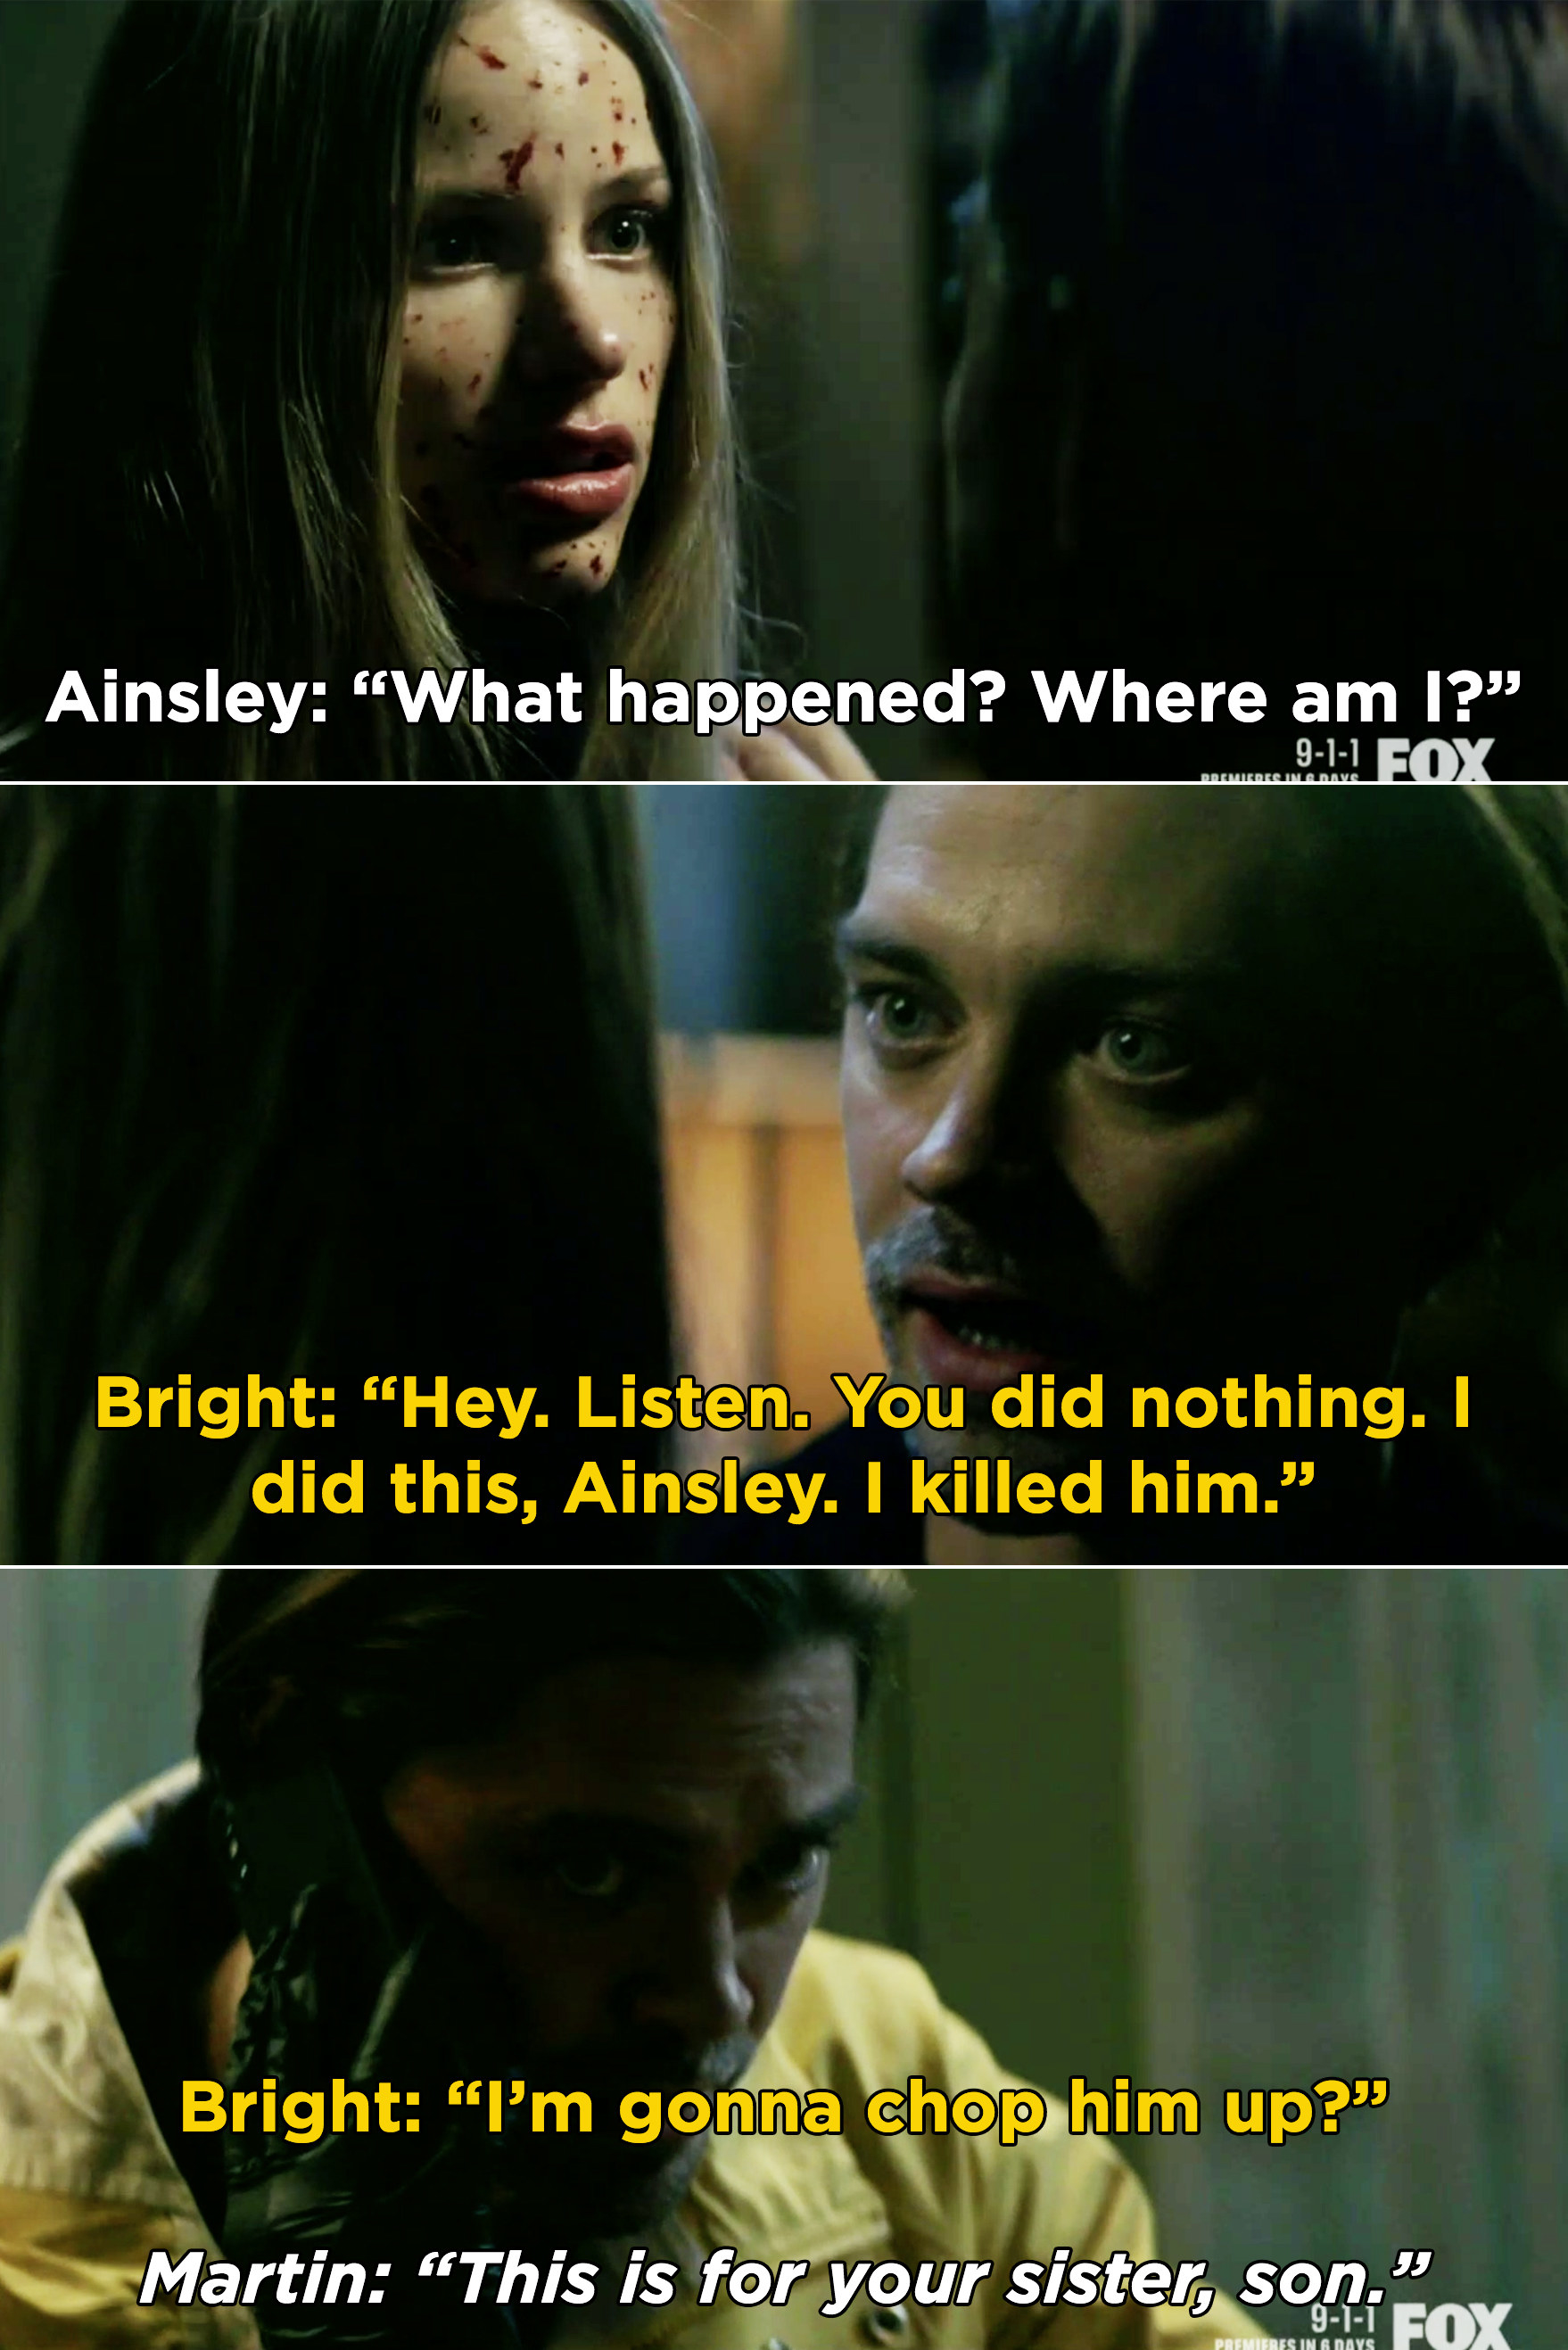 Bright telling Ainsley that he killed Nicholas, not her. And, Martin telling Bright to chop up Nicholas's body